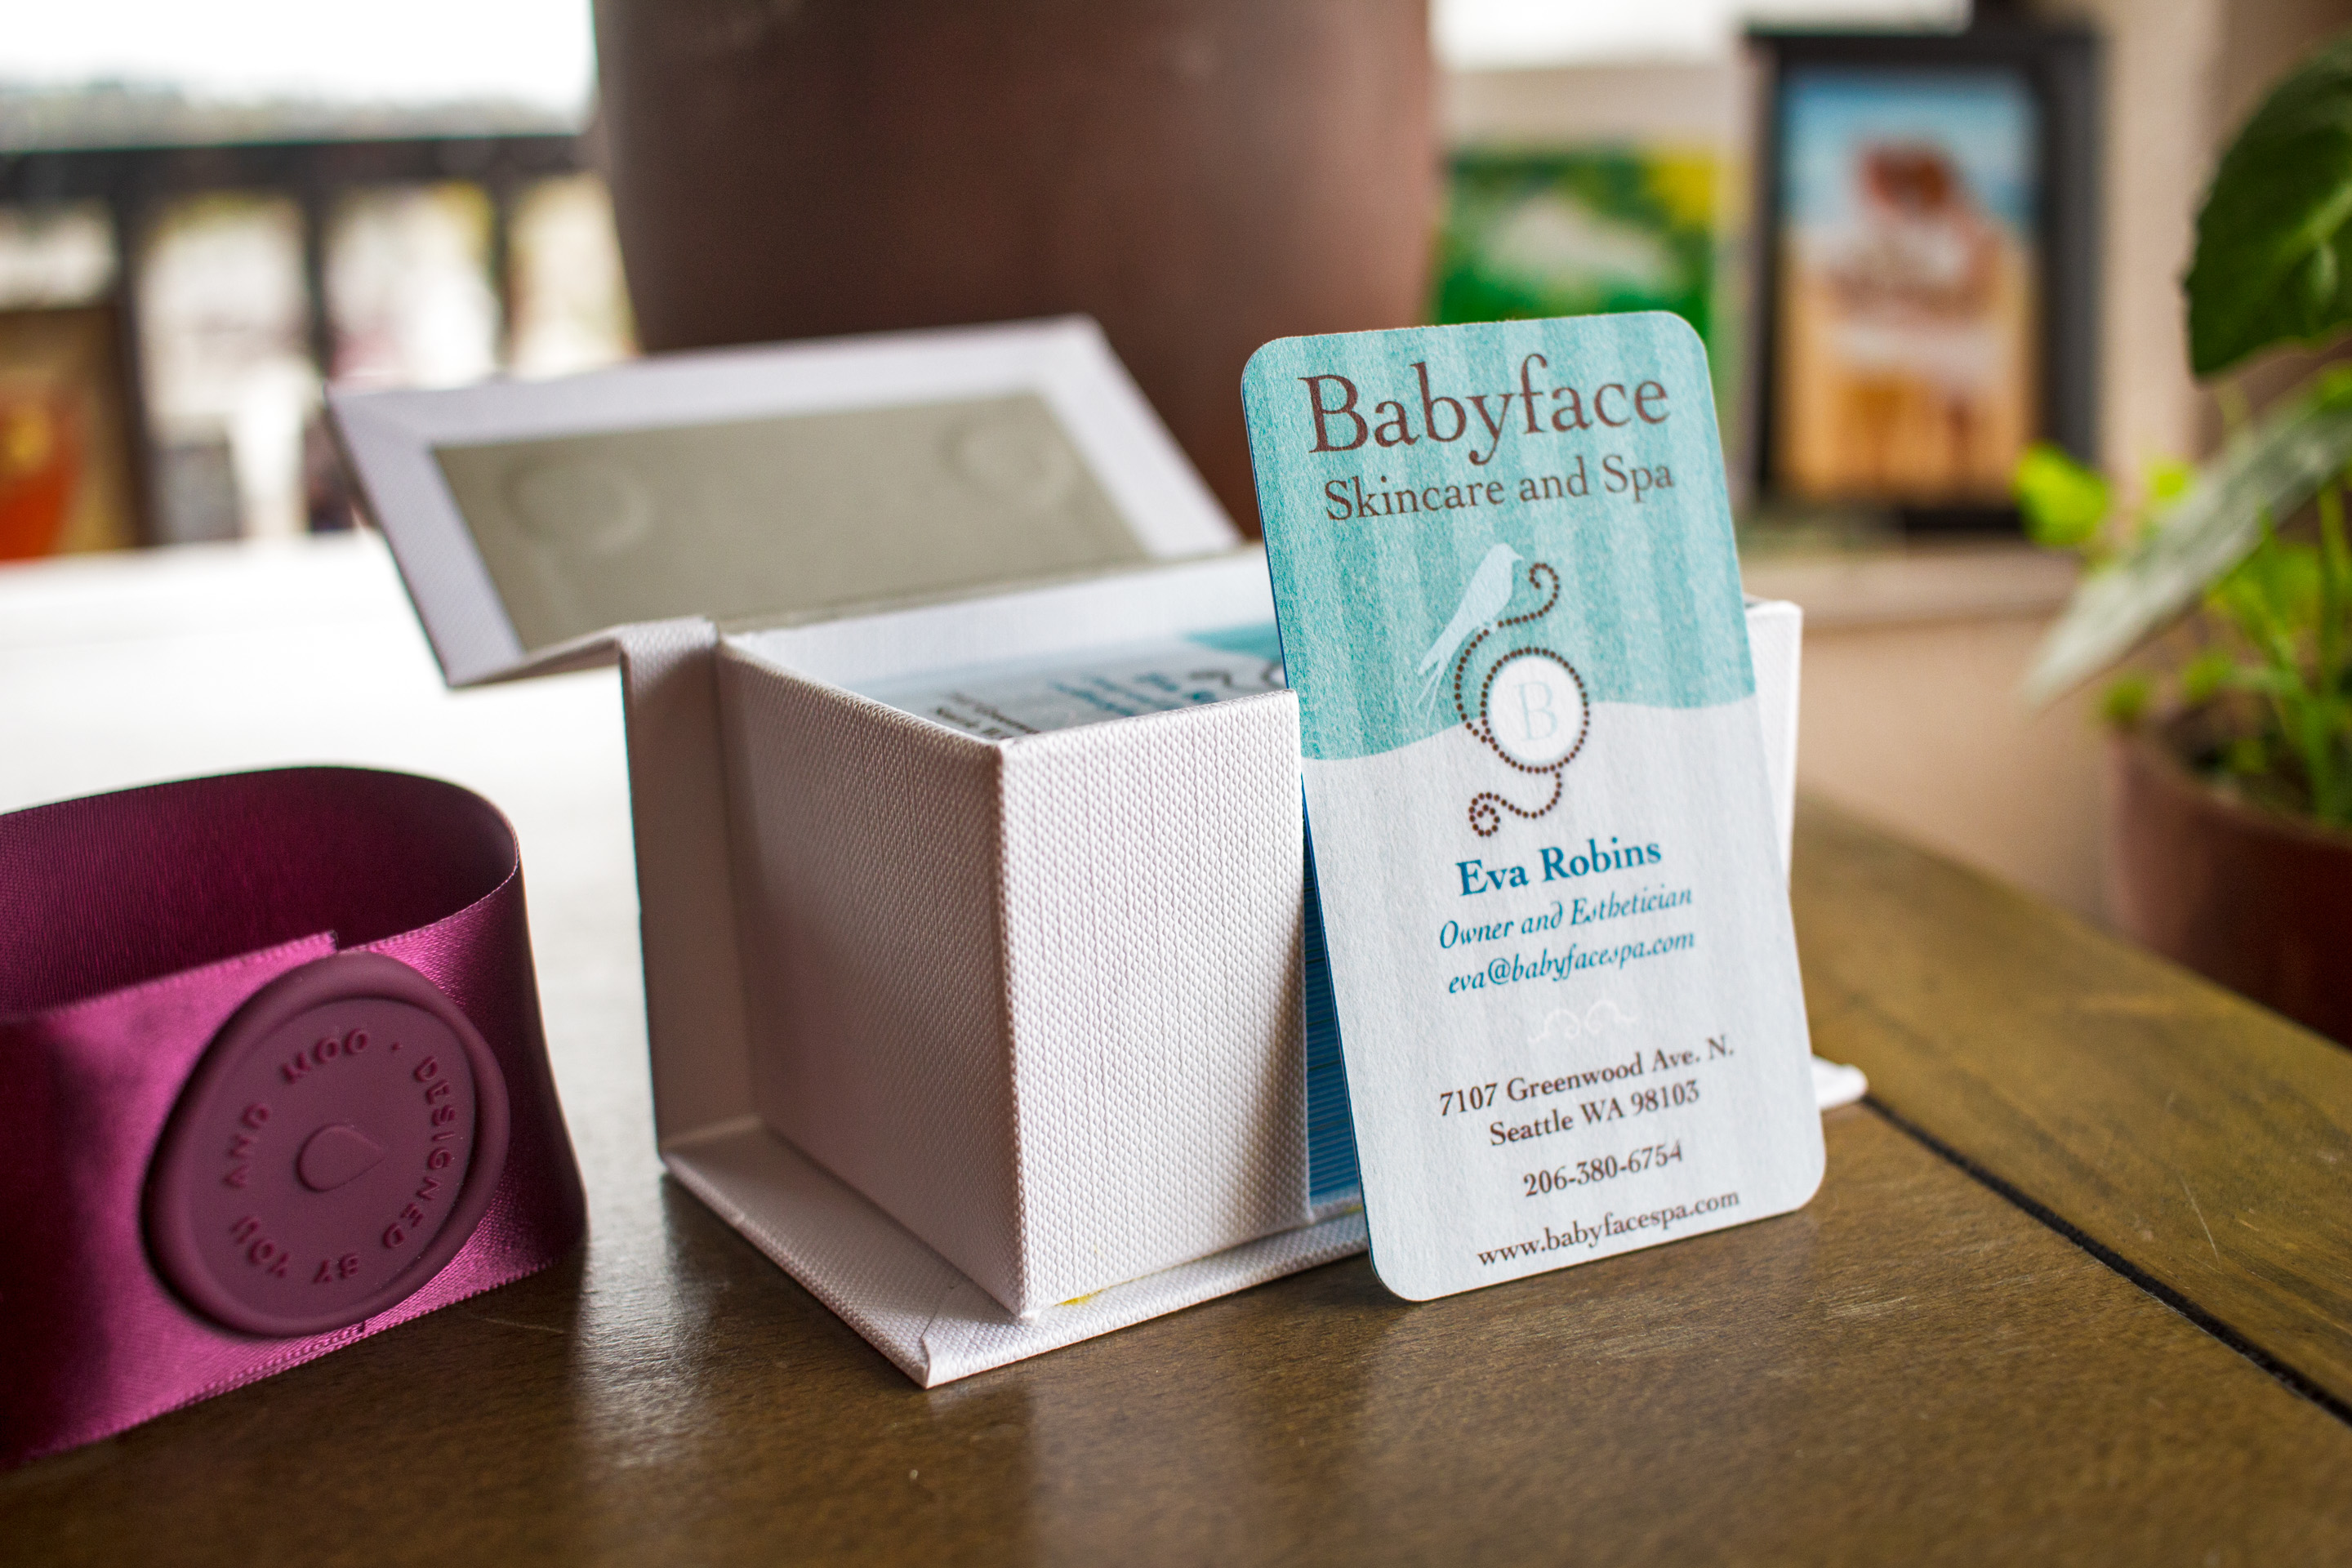 Babyface Skincare Business Cards